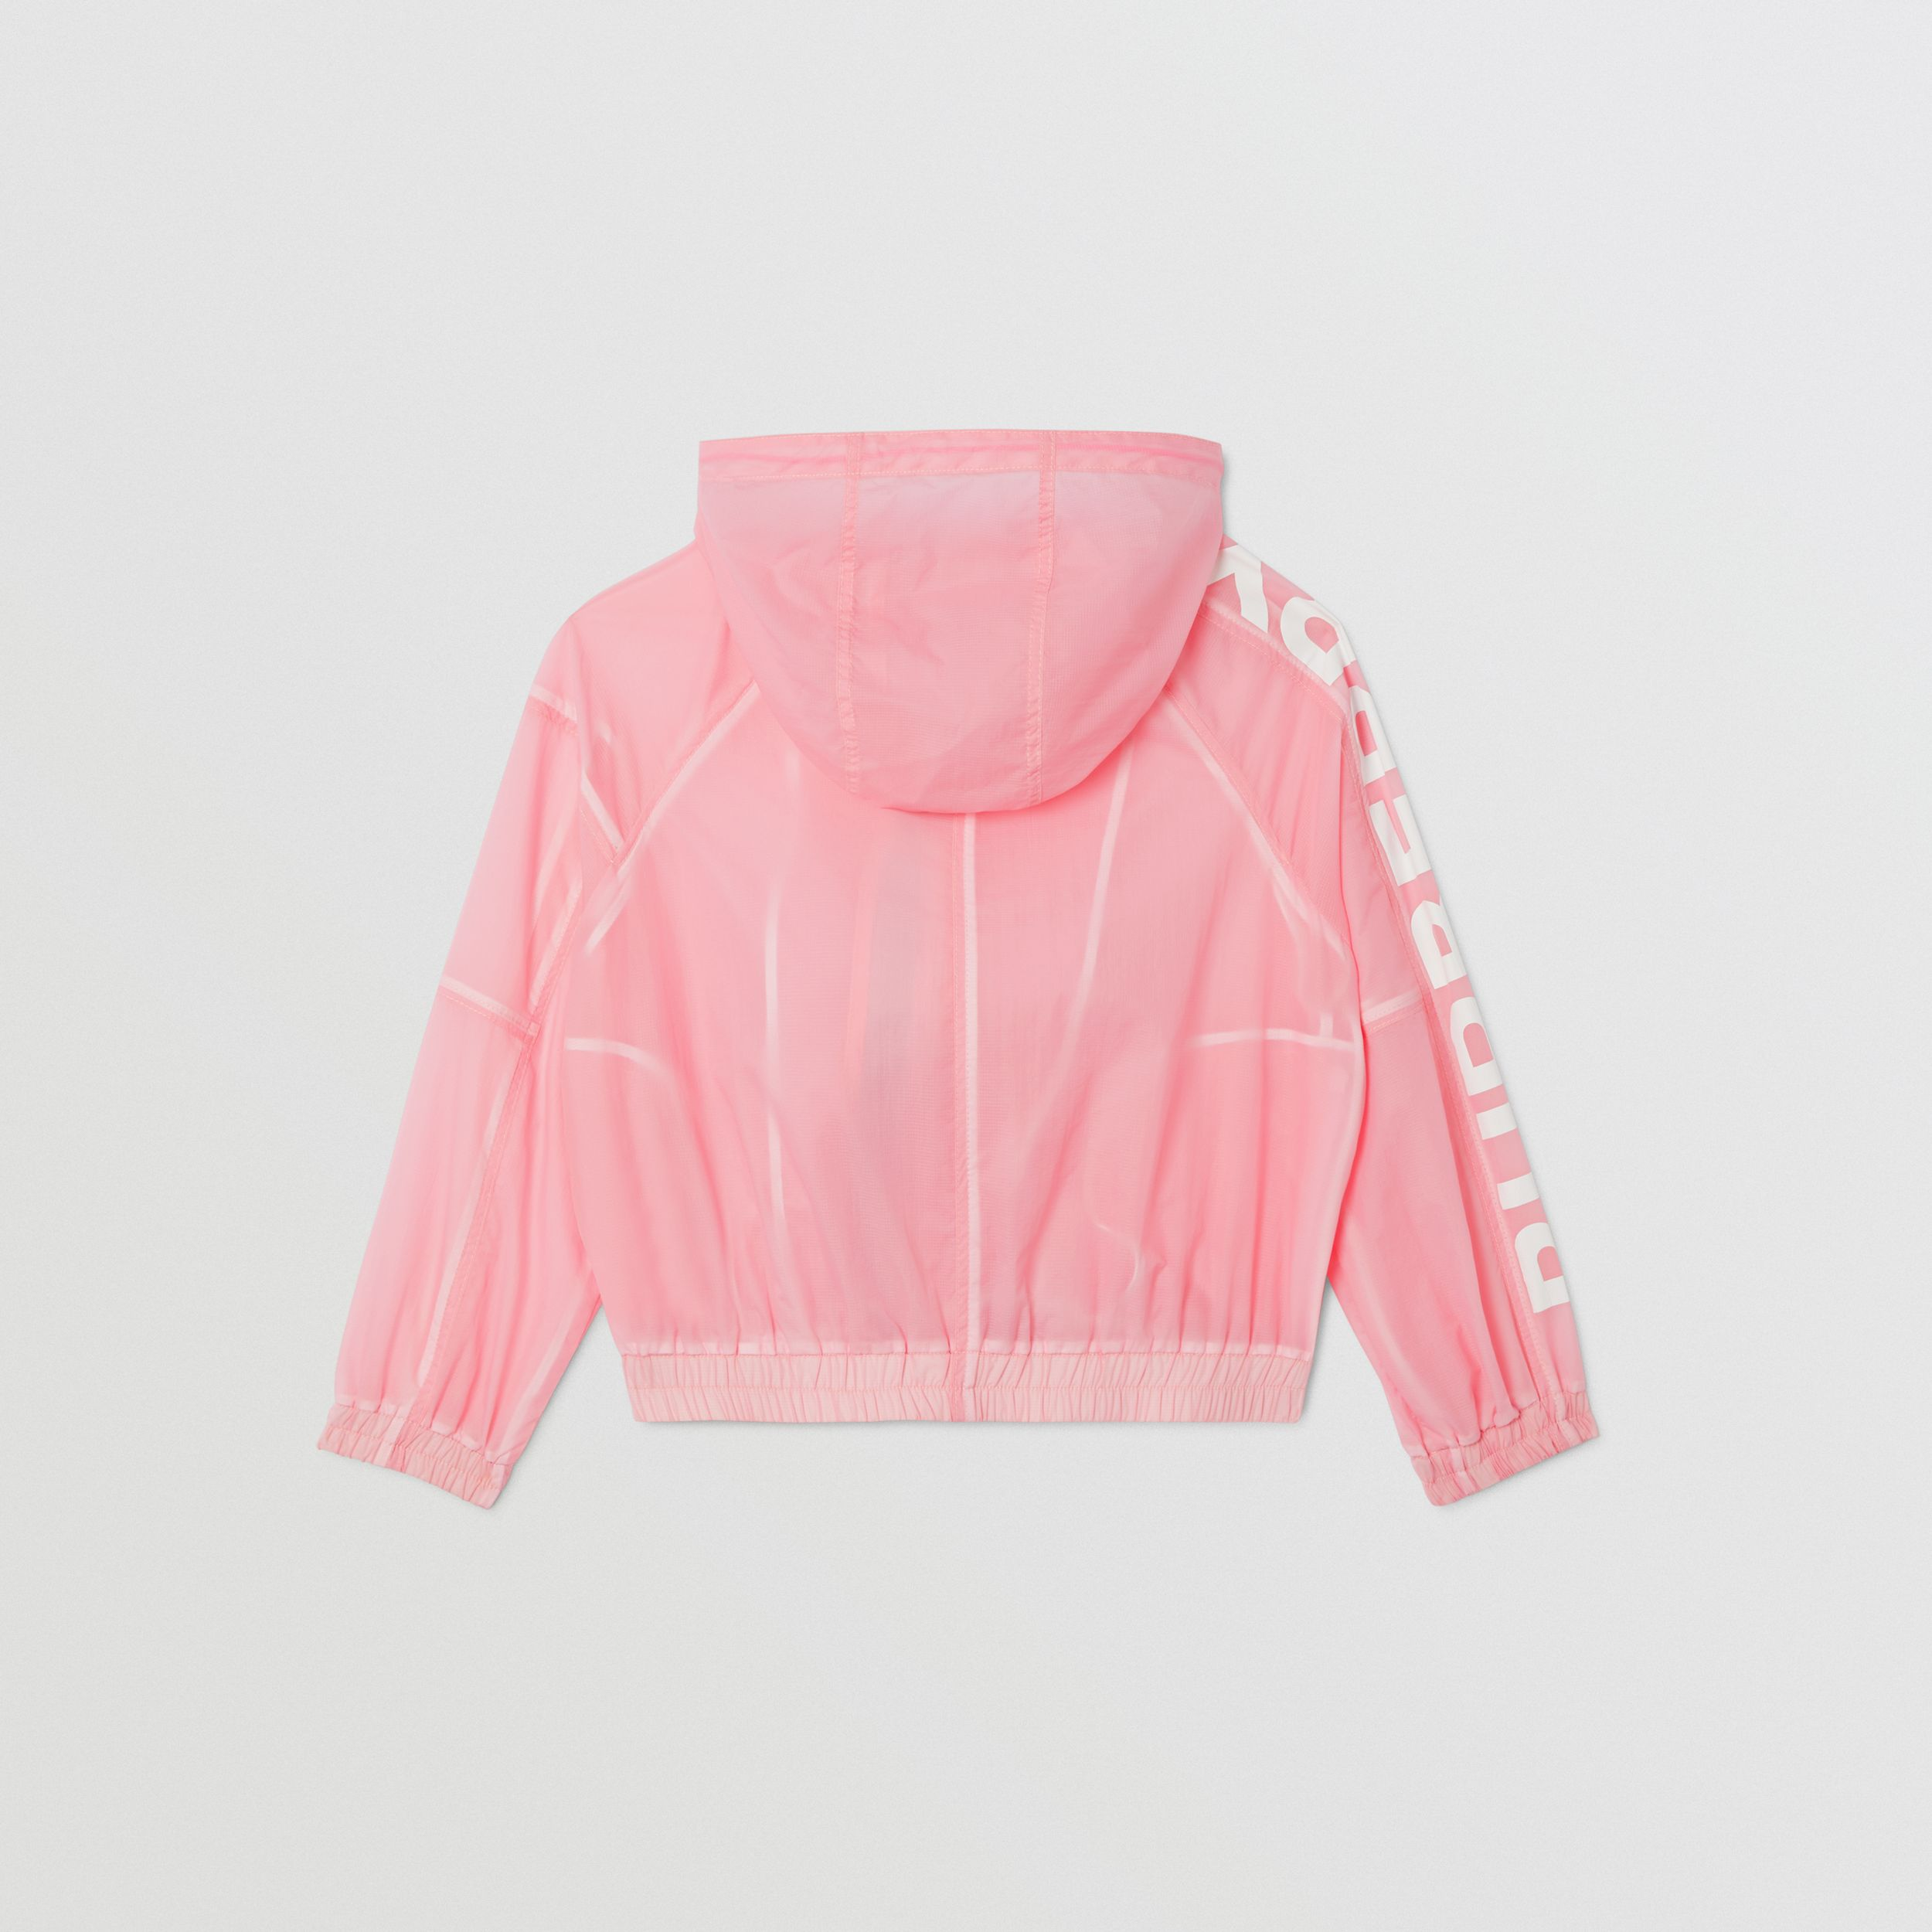 Star Detail Logo Print Lightweight Hooded Jacket in Candy Pink | Burberry - 4